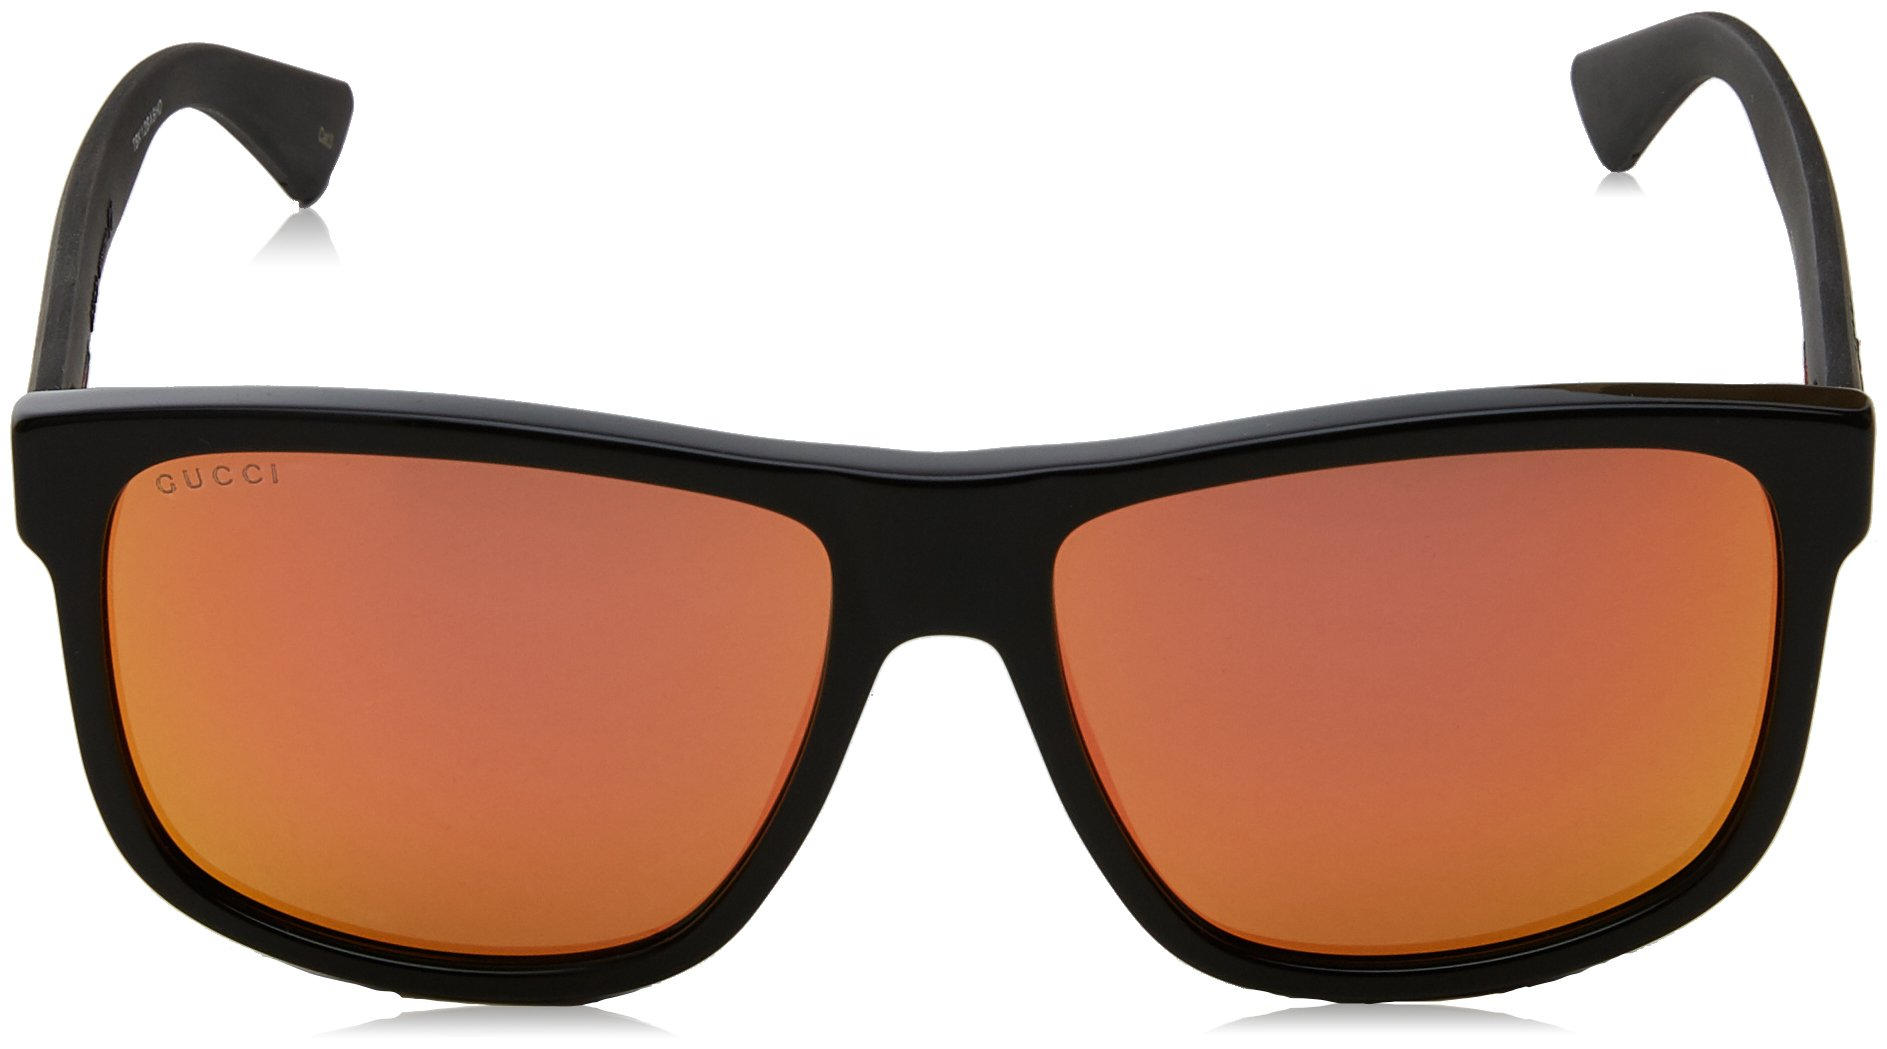 Gucci sunglasses for men